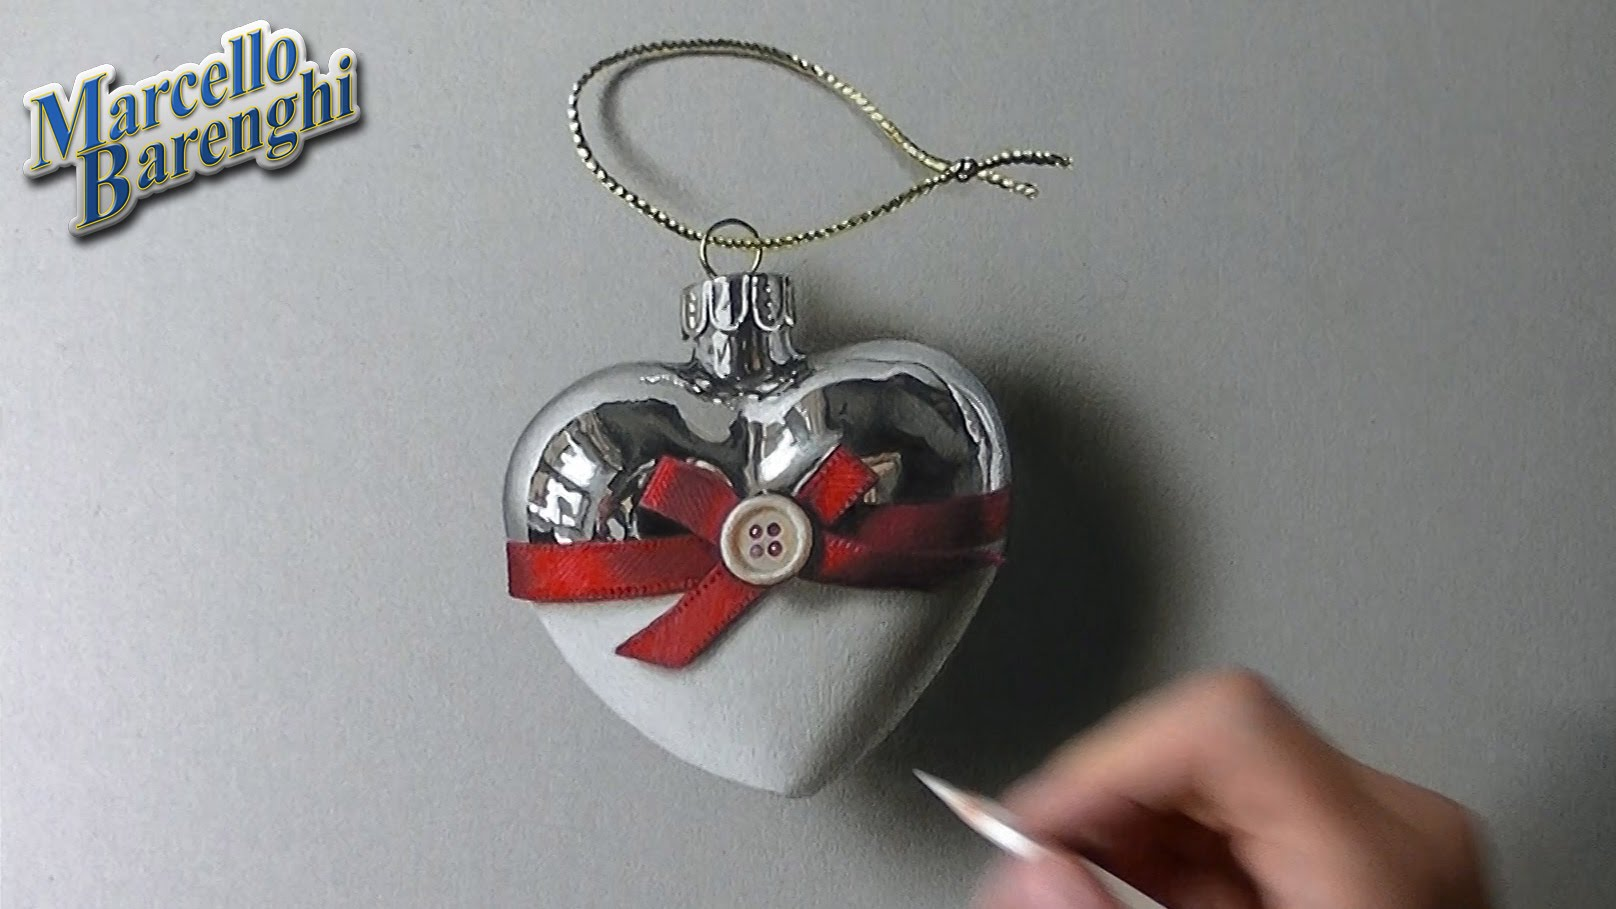 Drawn red rose marcello barenghi Marcello YouTube Heart Bauble Bauble